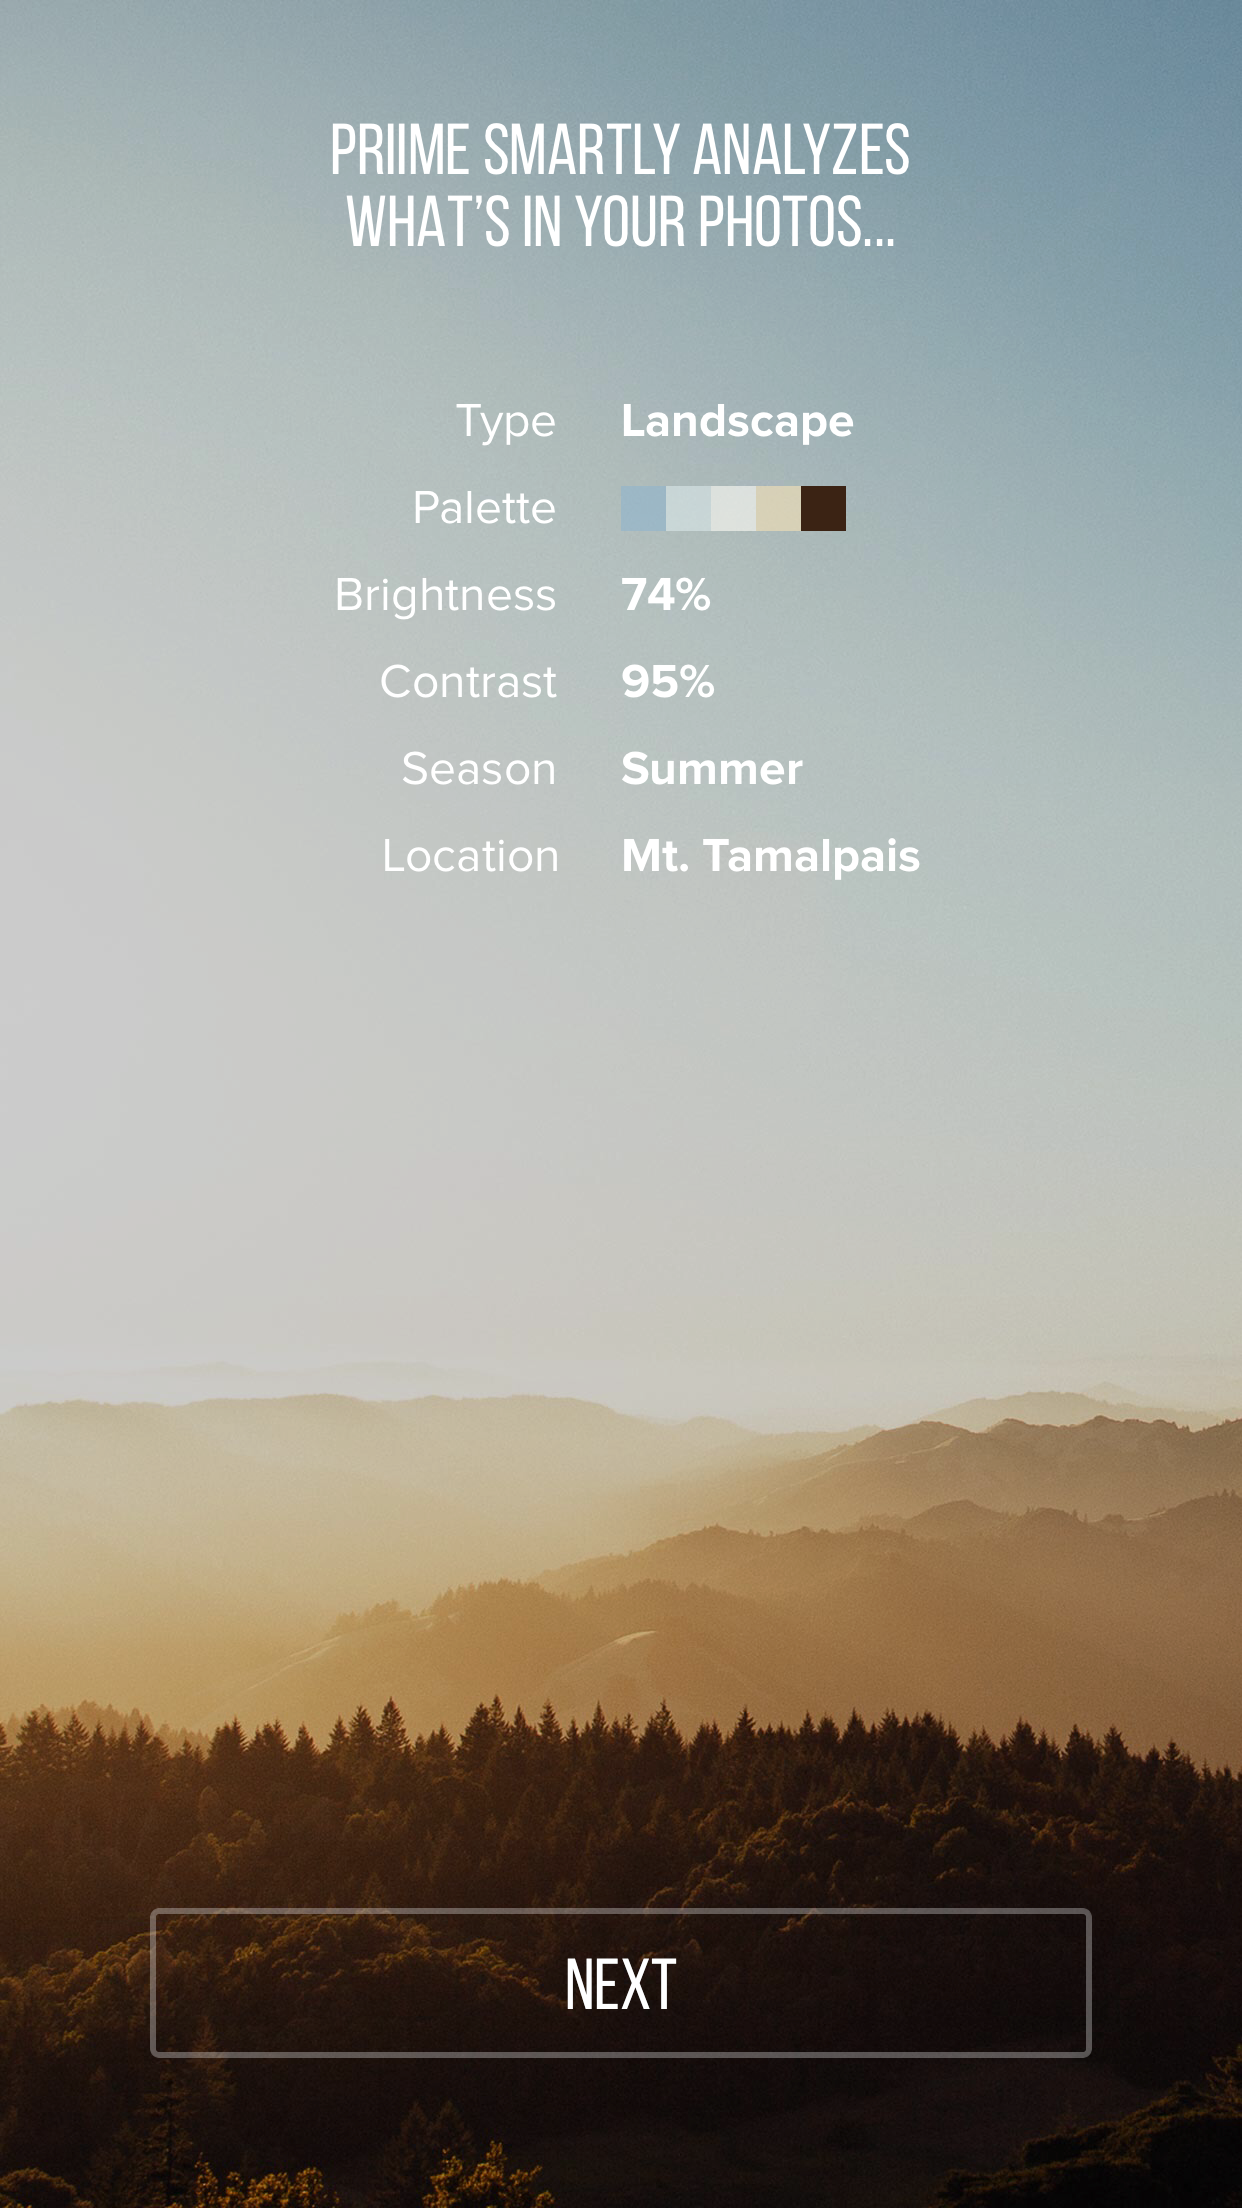 IMG 0230 Priime for iPhone intelligently suggests which filters to use on your photos